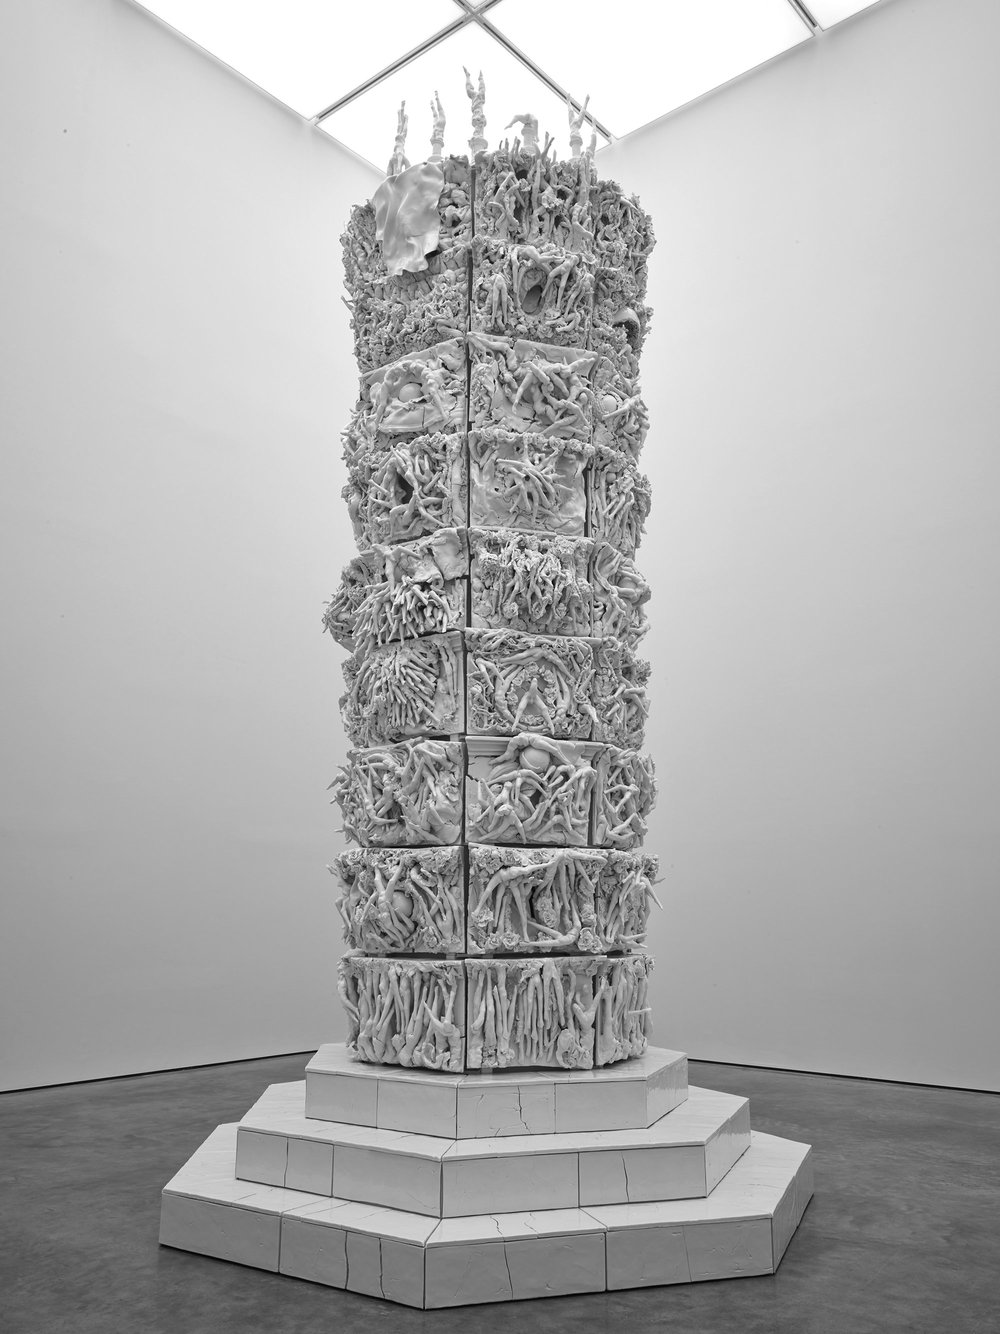 399 DAYS; 2012—2013; Porcelain and mild steel; 212 5/8 x 113 x 111 7/16 inches (540 x 287 x 283 cm)